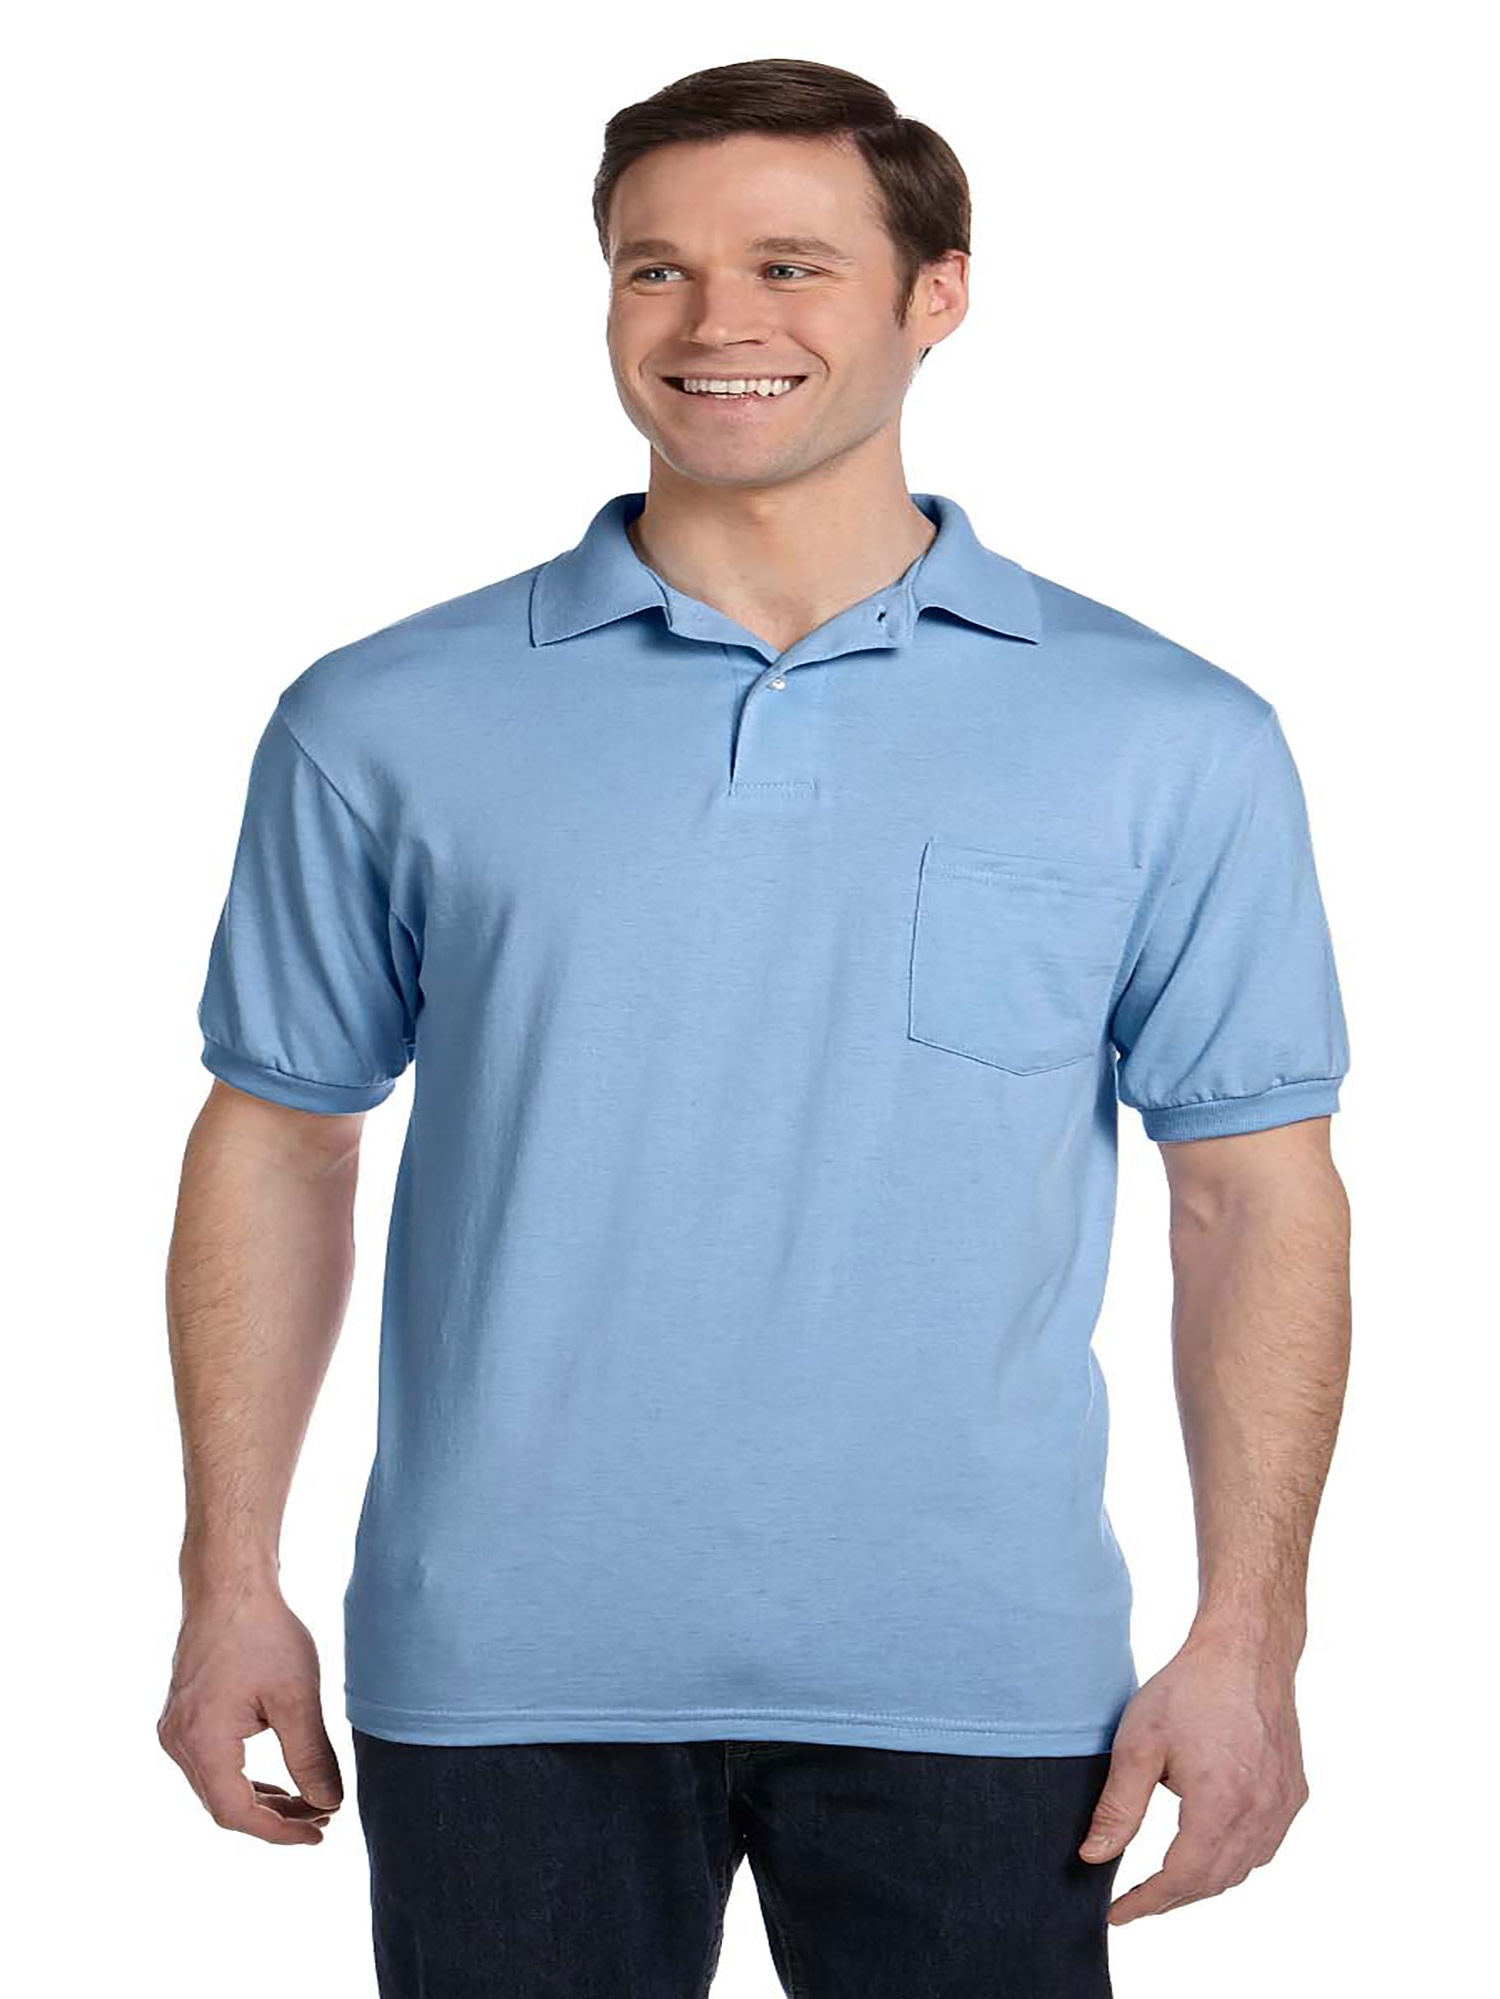 Hanes Hanes Mens Cotton Blend Ecosmart Jersey Polo With Pocket